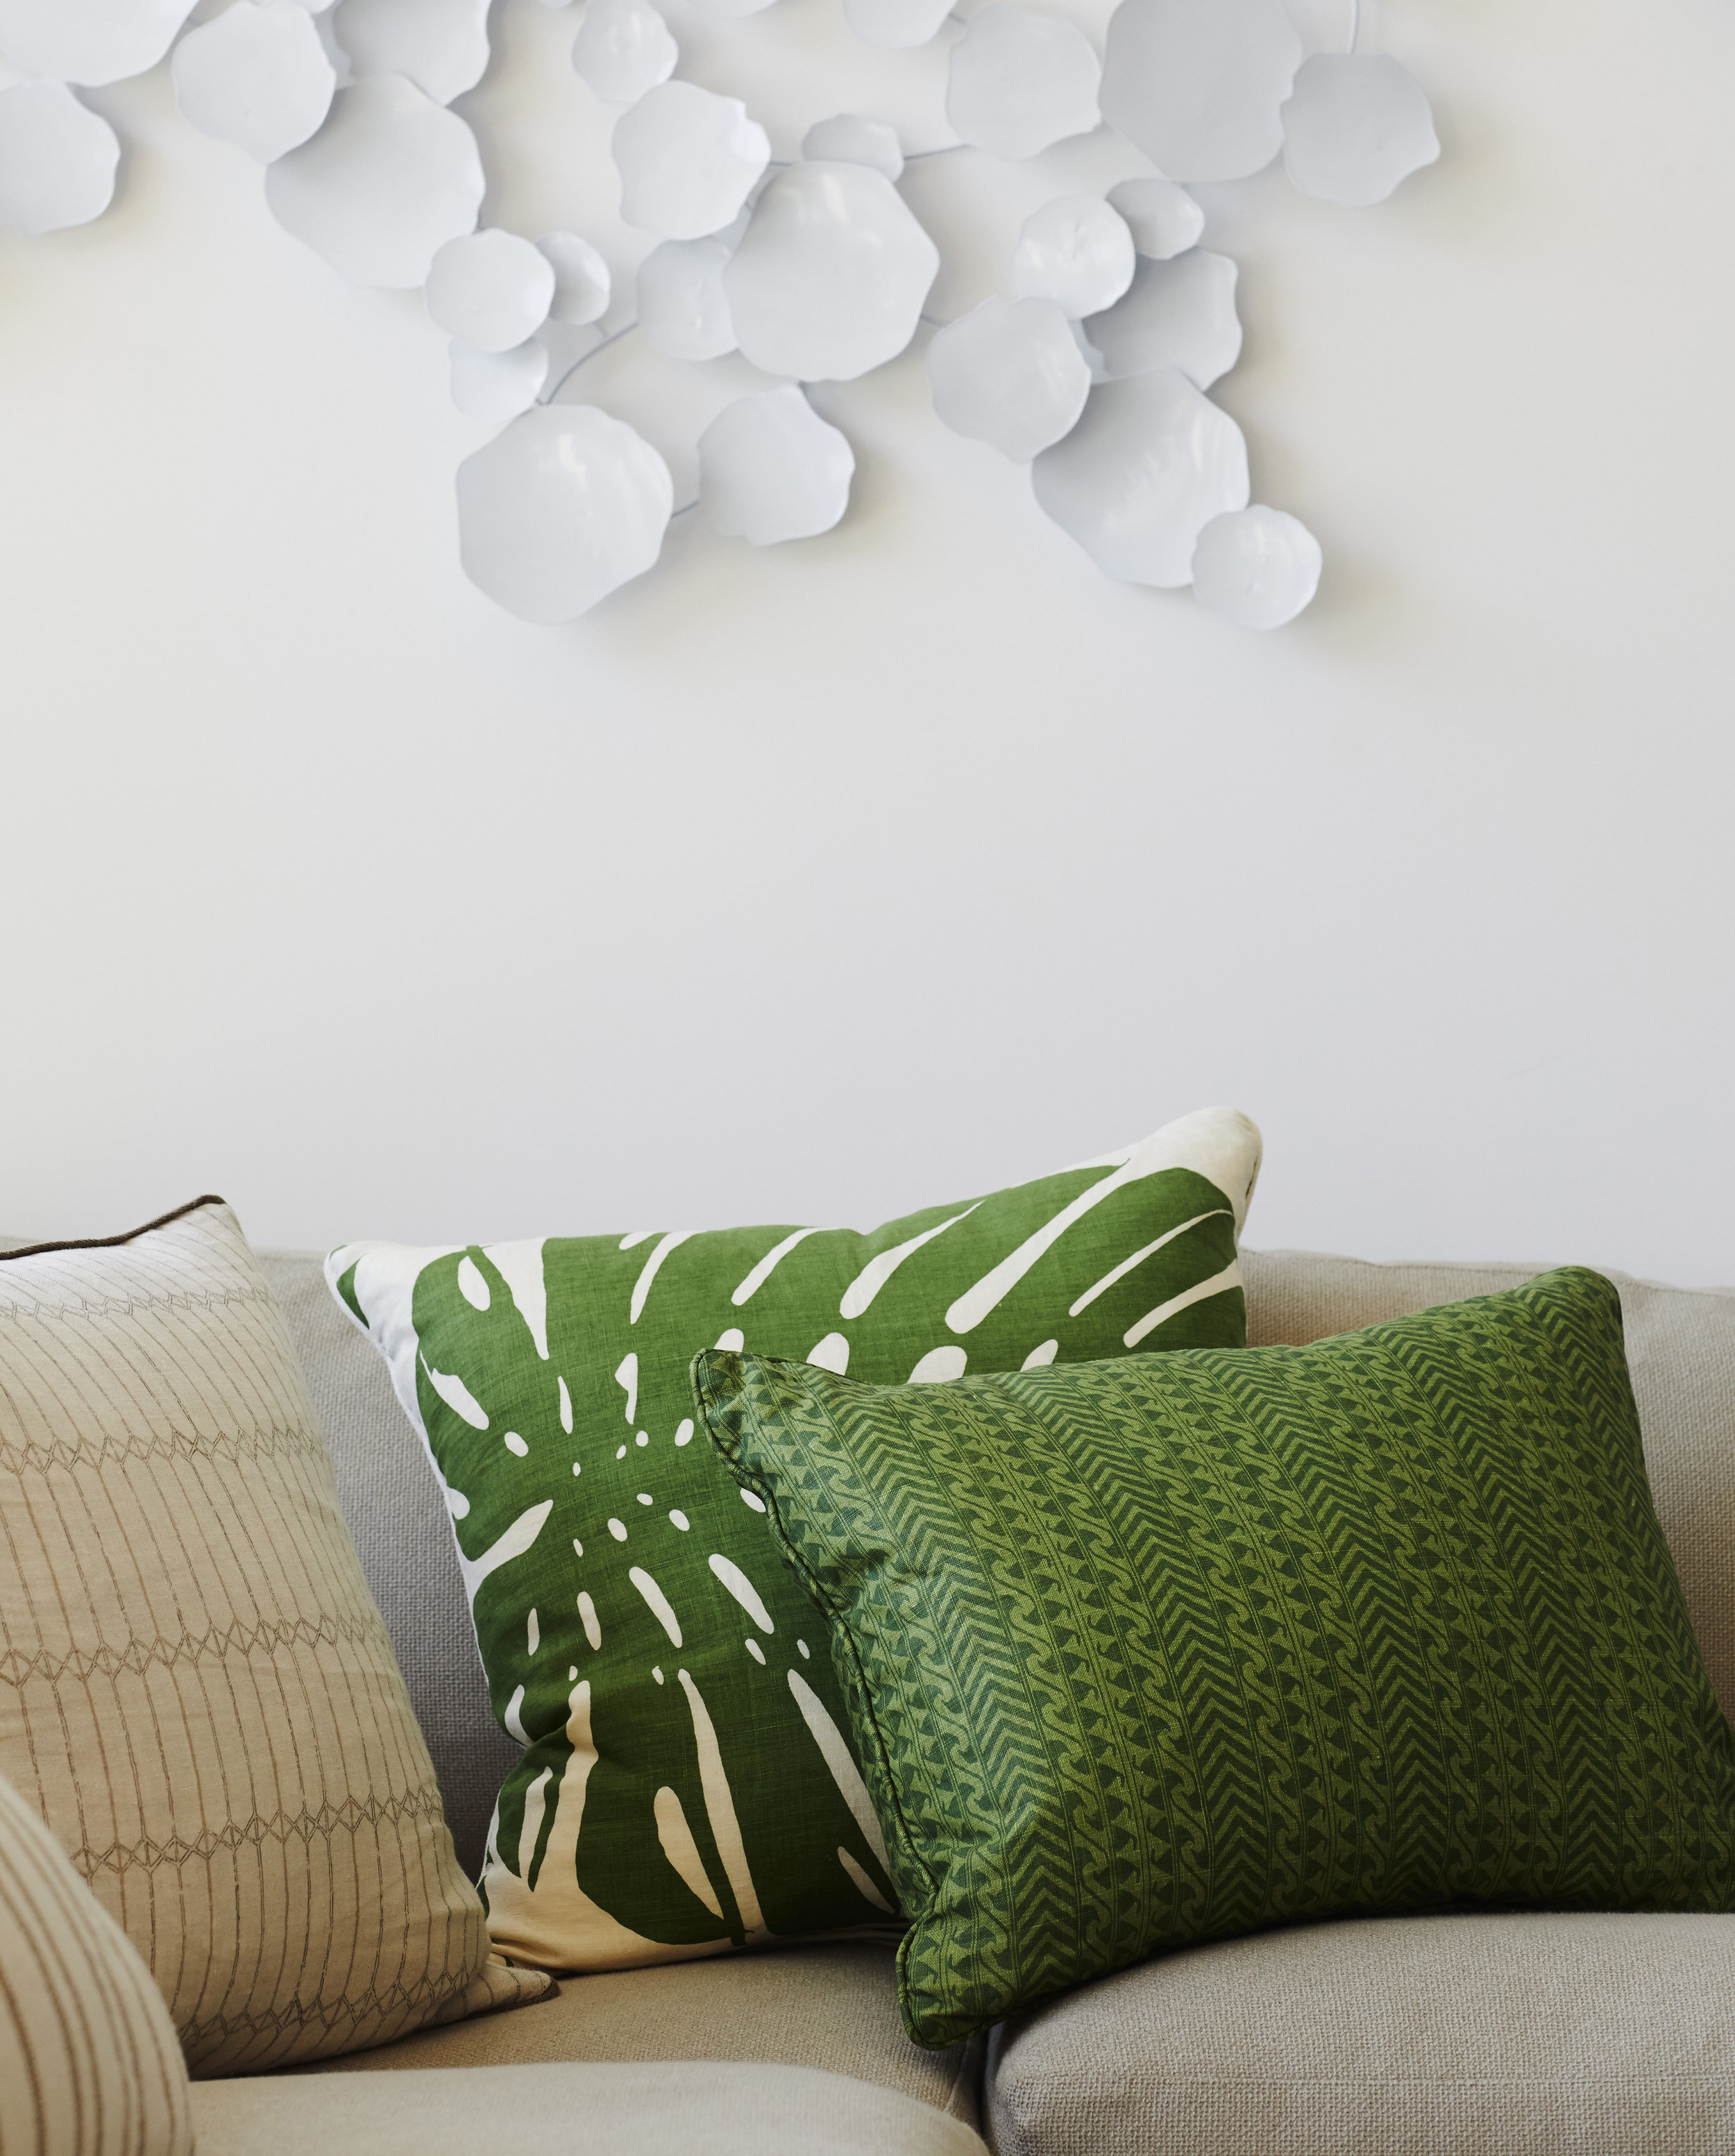 SHOP PILLOWS - Some of our favorite decorative pillows in stock and ready to ship